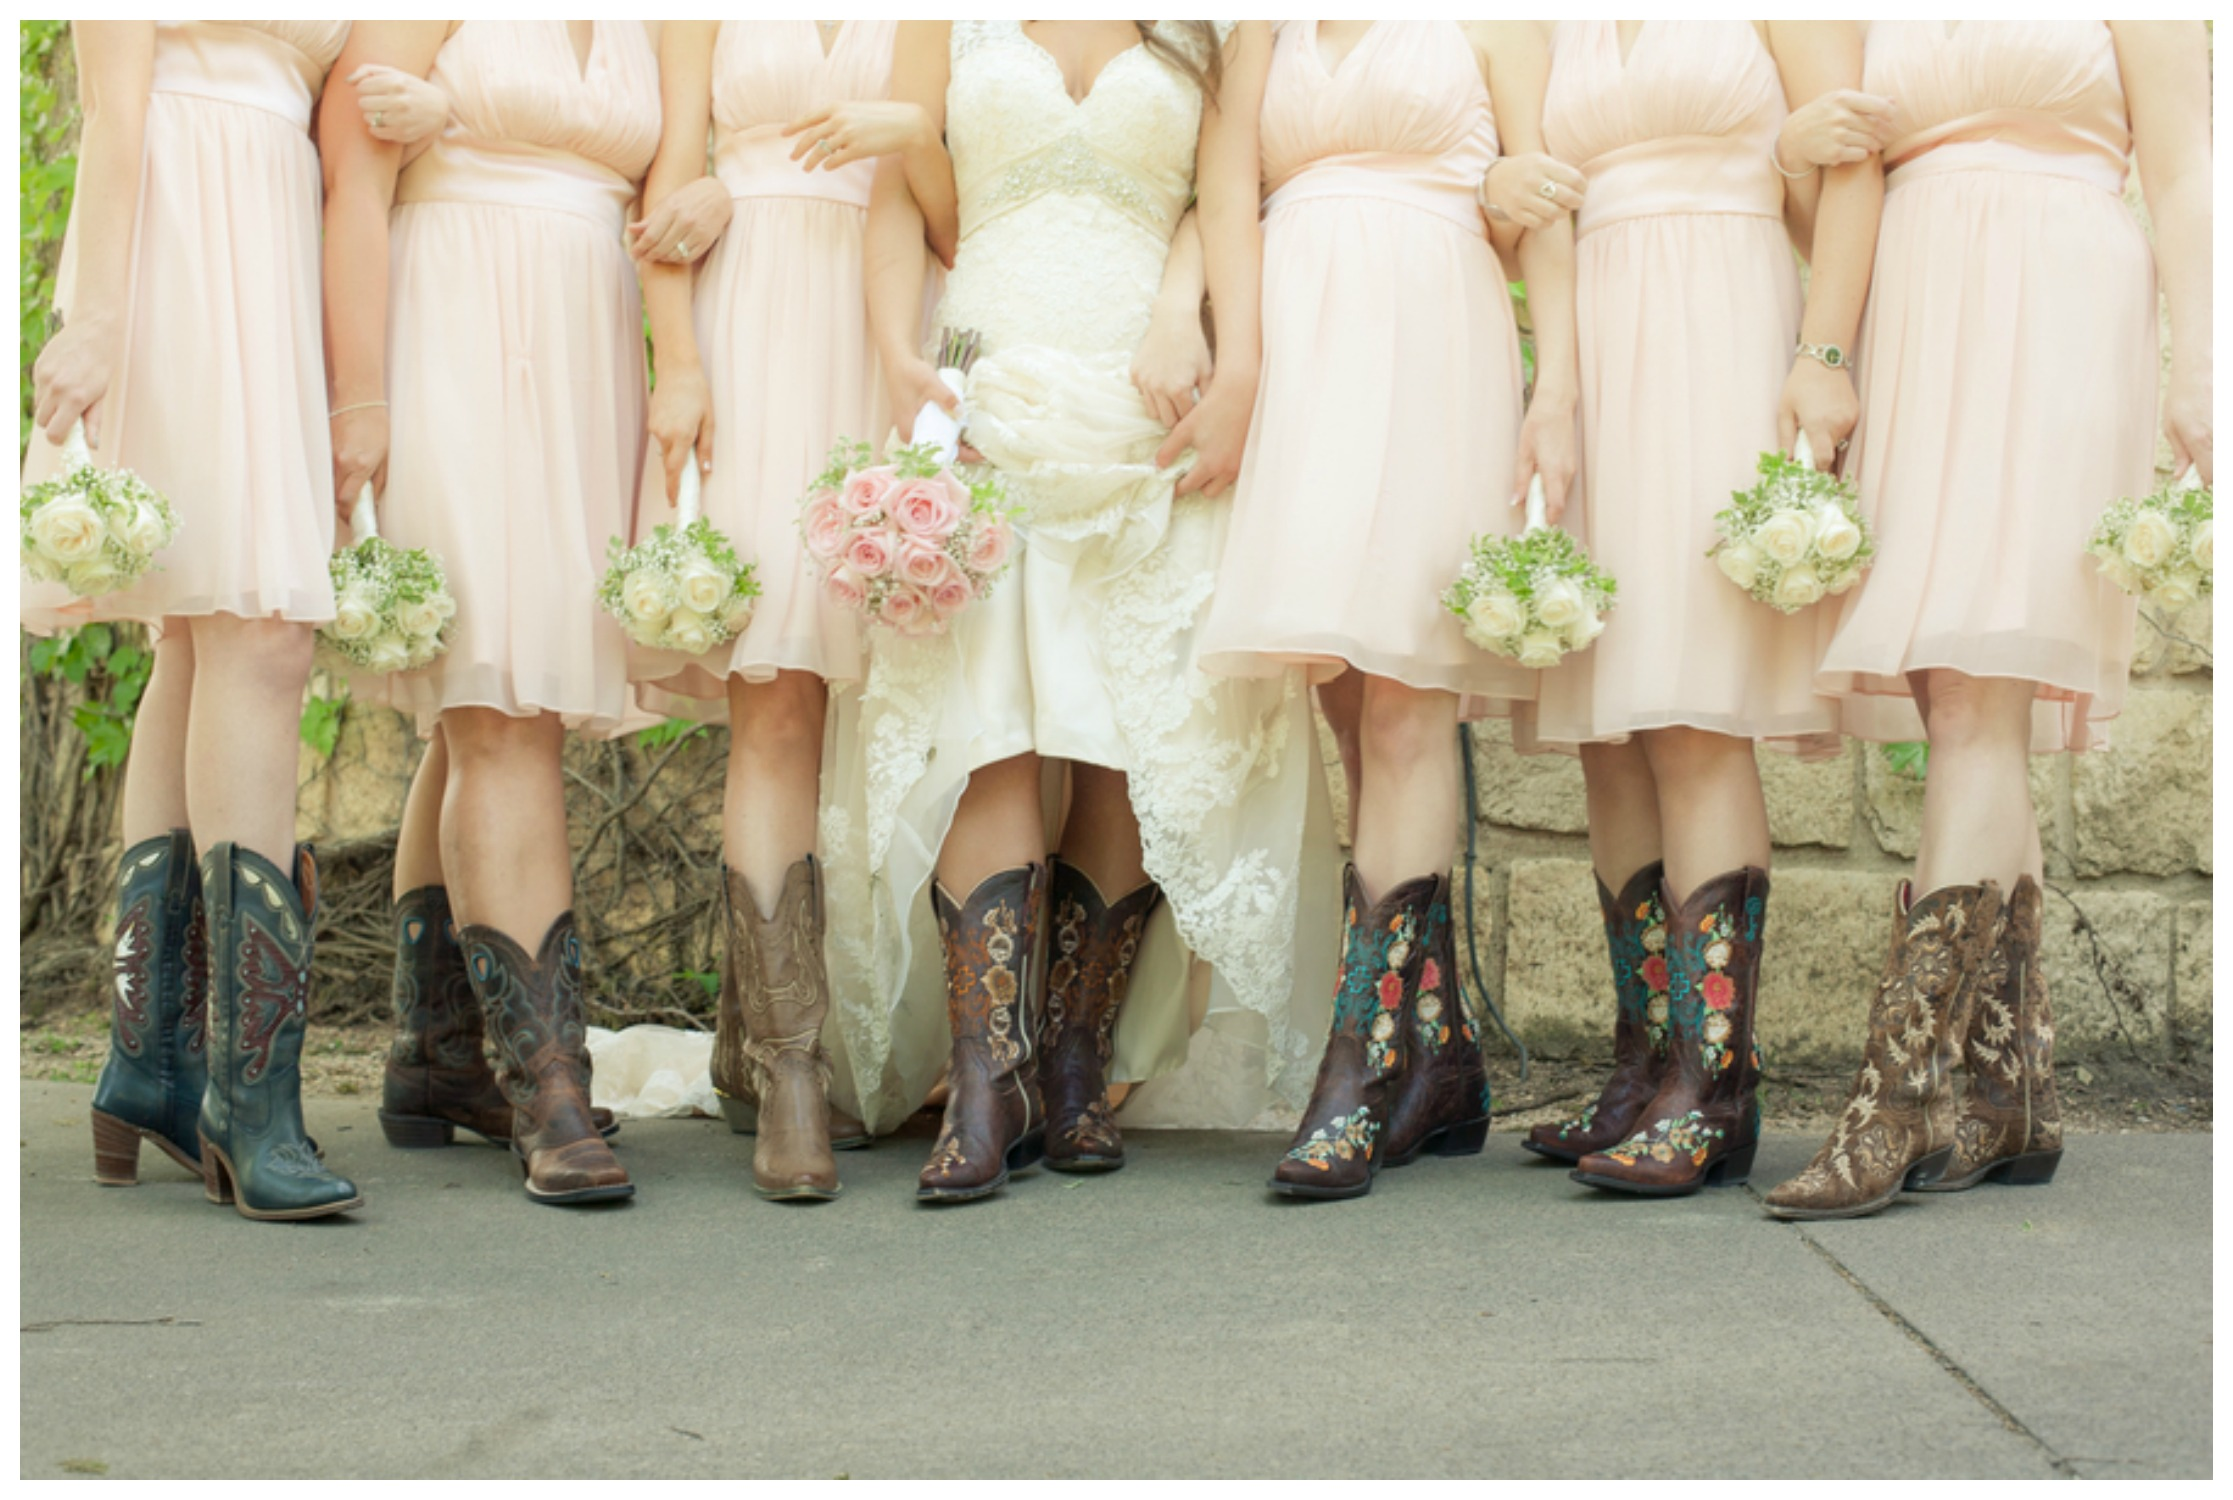 Rustic Wedding Bridesmaid Dress With Boots